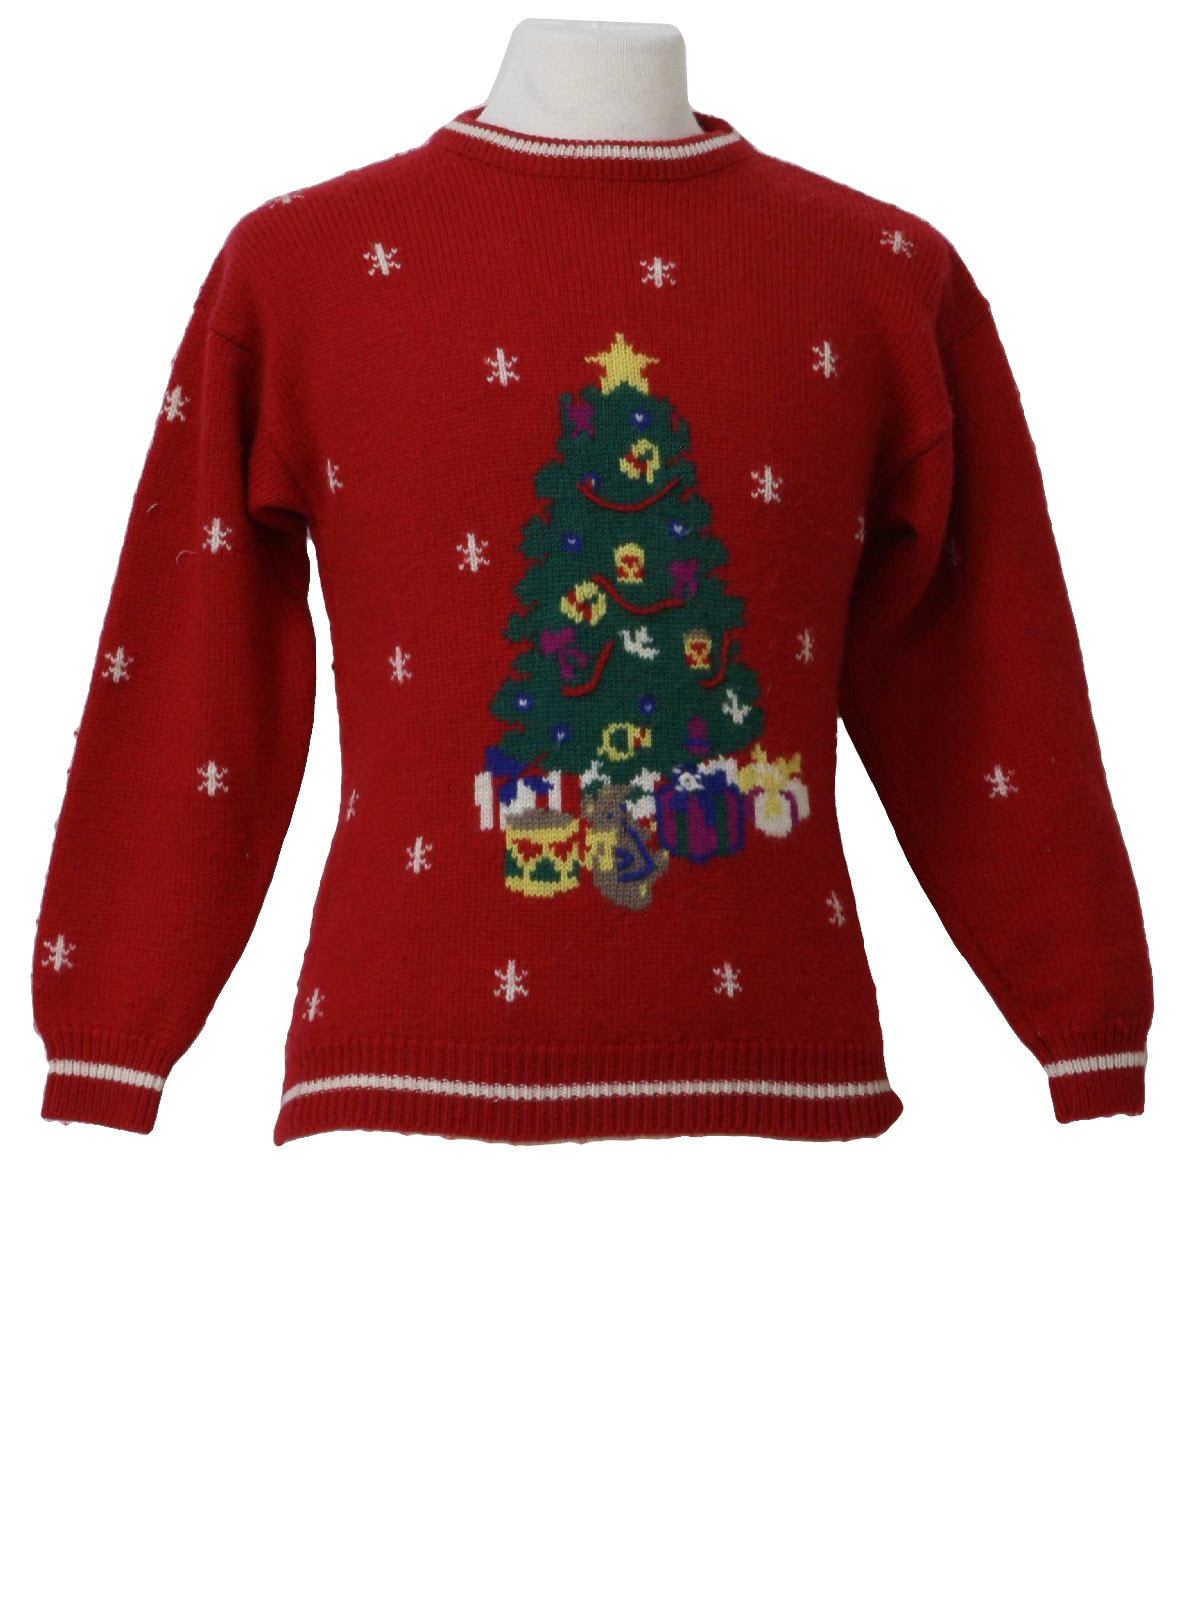 Shop for boys christmas sweater online at Target. Free shipping on purchases over $35 and save 5% every day with your Target REDcard.